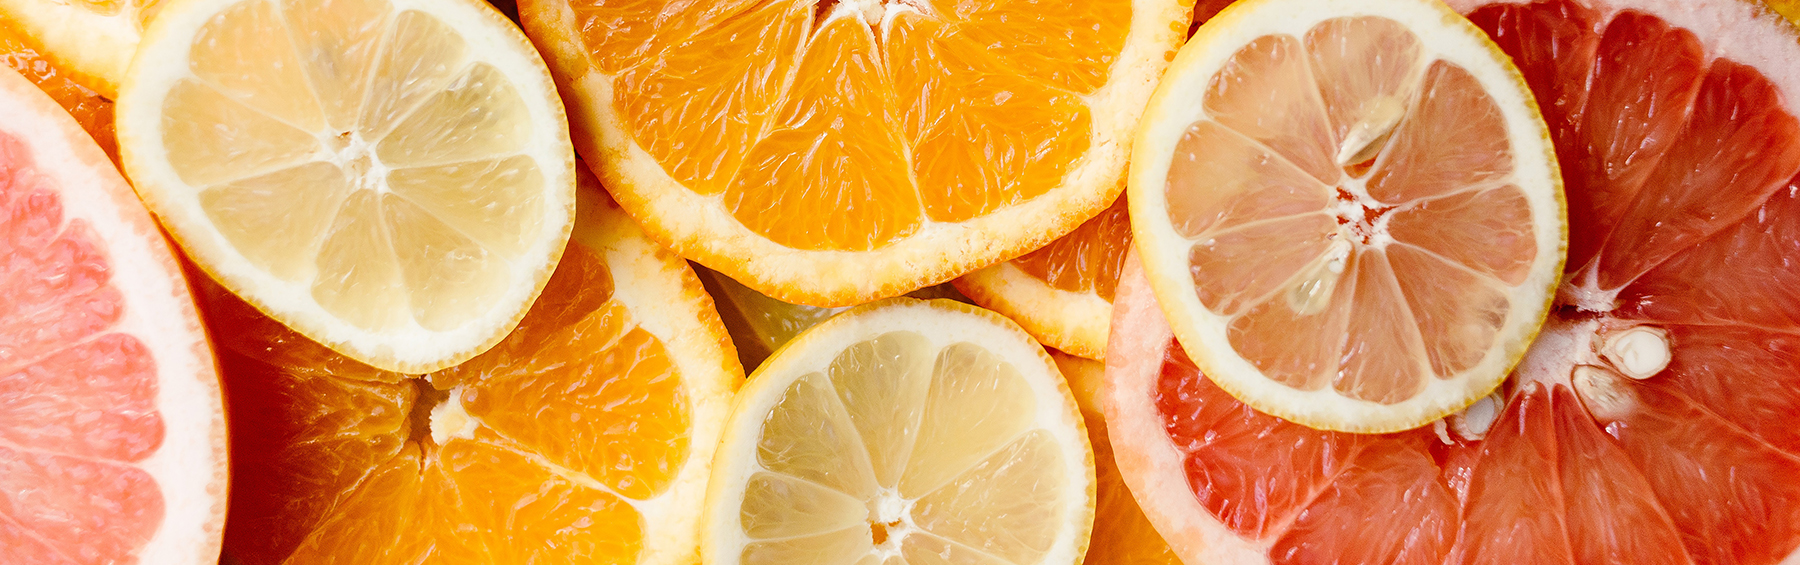 Vitamin deficiencies and the connection with teeth grinding